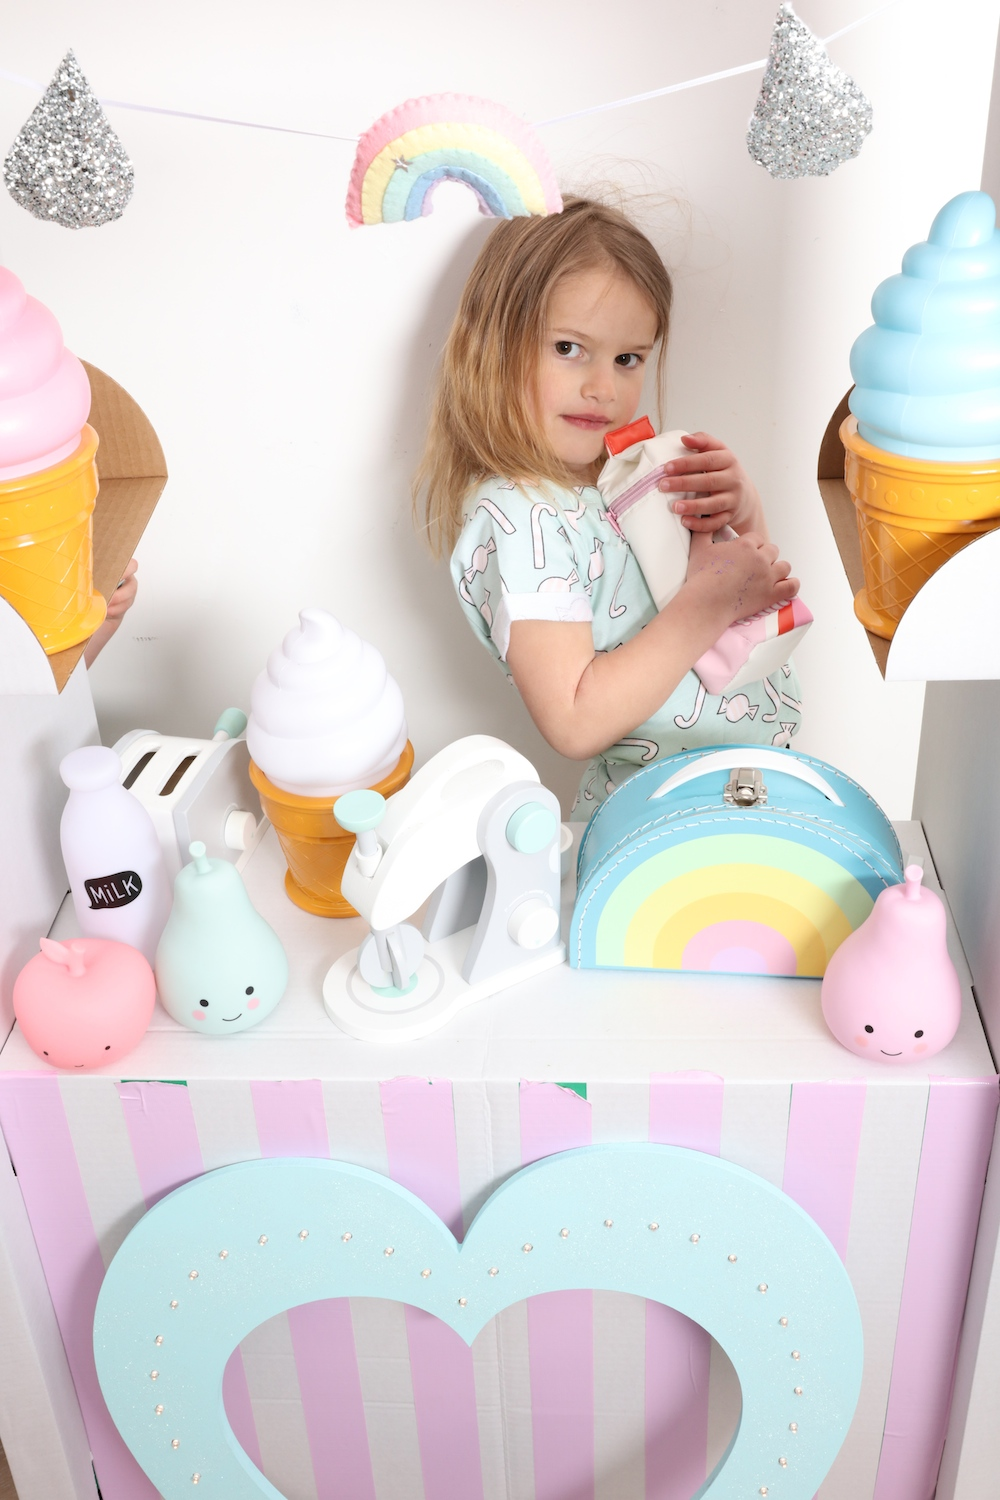 Ikea_shop_retro_kids_rainbow_case